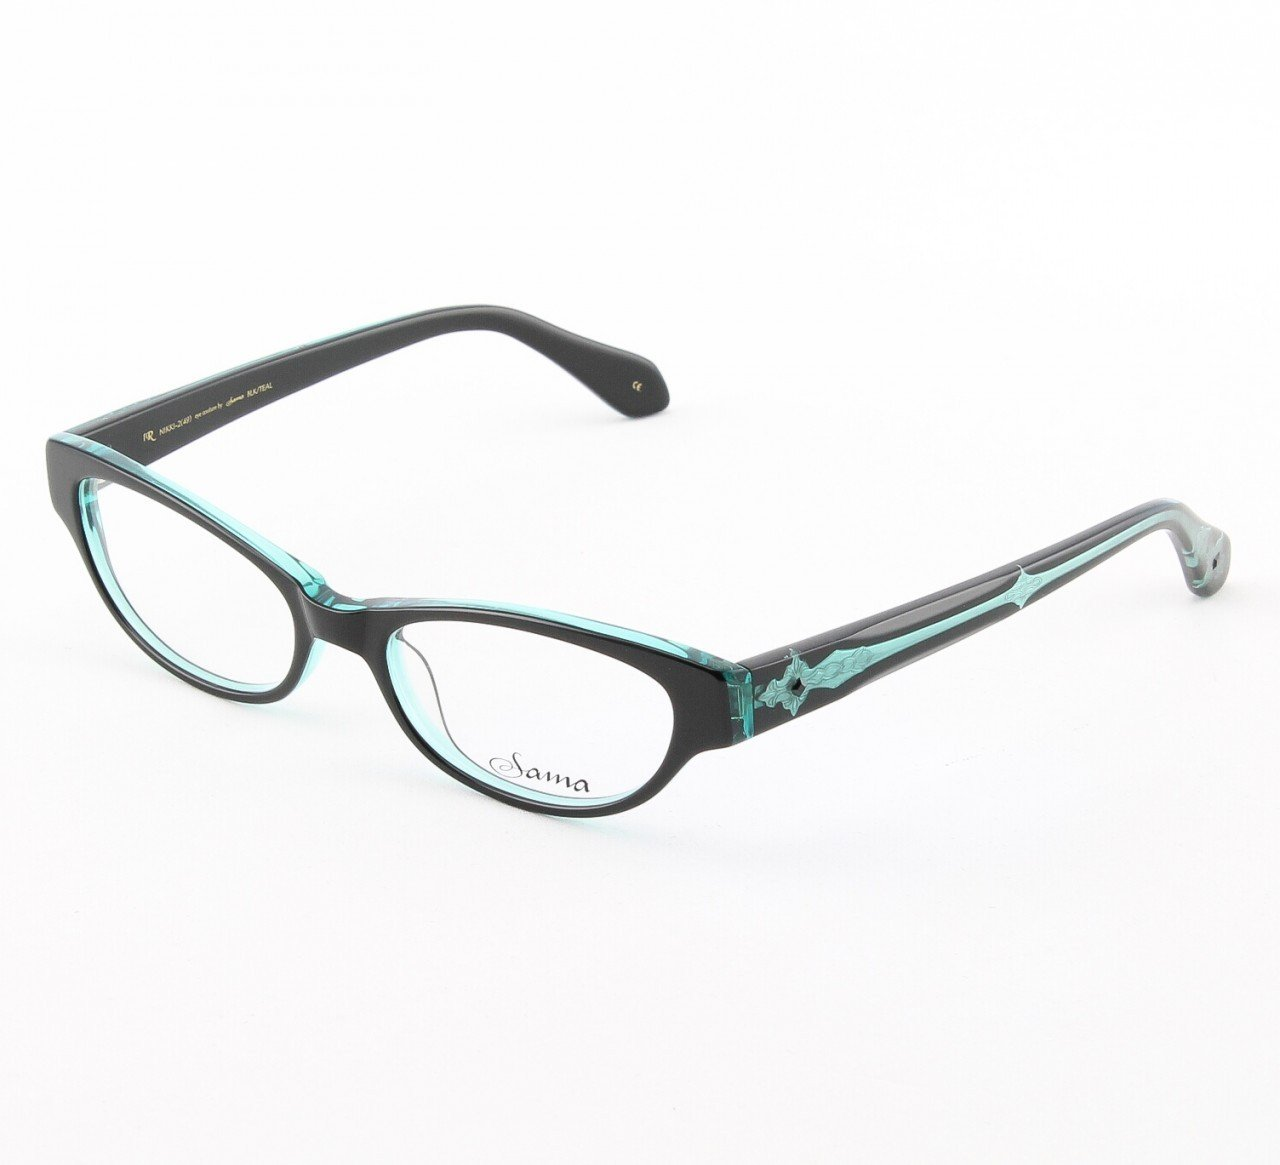 Loree Rodkin Nikki Eyeglasses Black/Teal w/ Swarovski Crystals, Decorative Temple Core